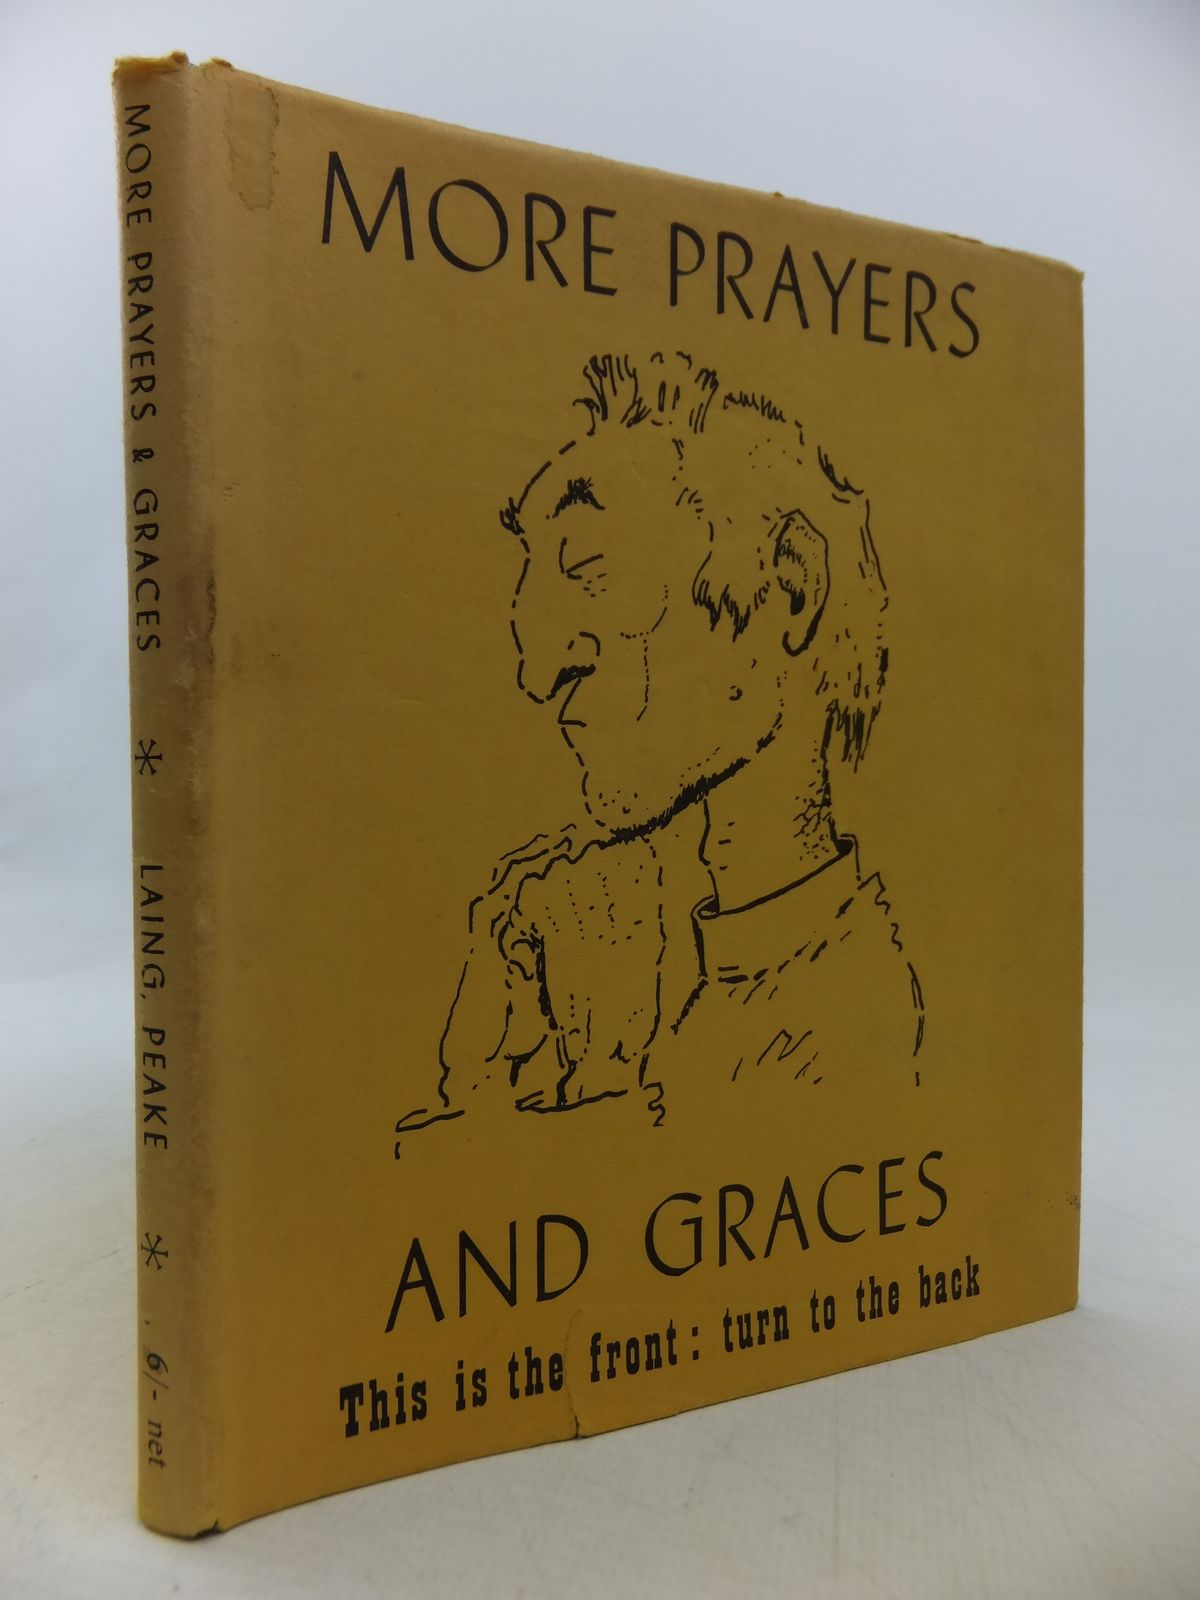 Photo of MORE PRAYERS AND GRACES written by Laing, Allan M. illustrated by Peake, Mervyn published by Victor Gollancz Ltd. (STOCK CODE: 2113126)  for sale by Stella & Rose's Books